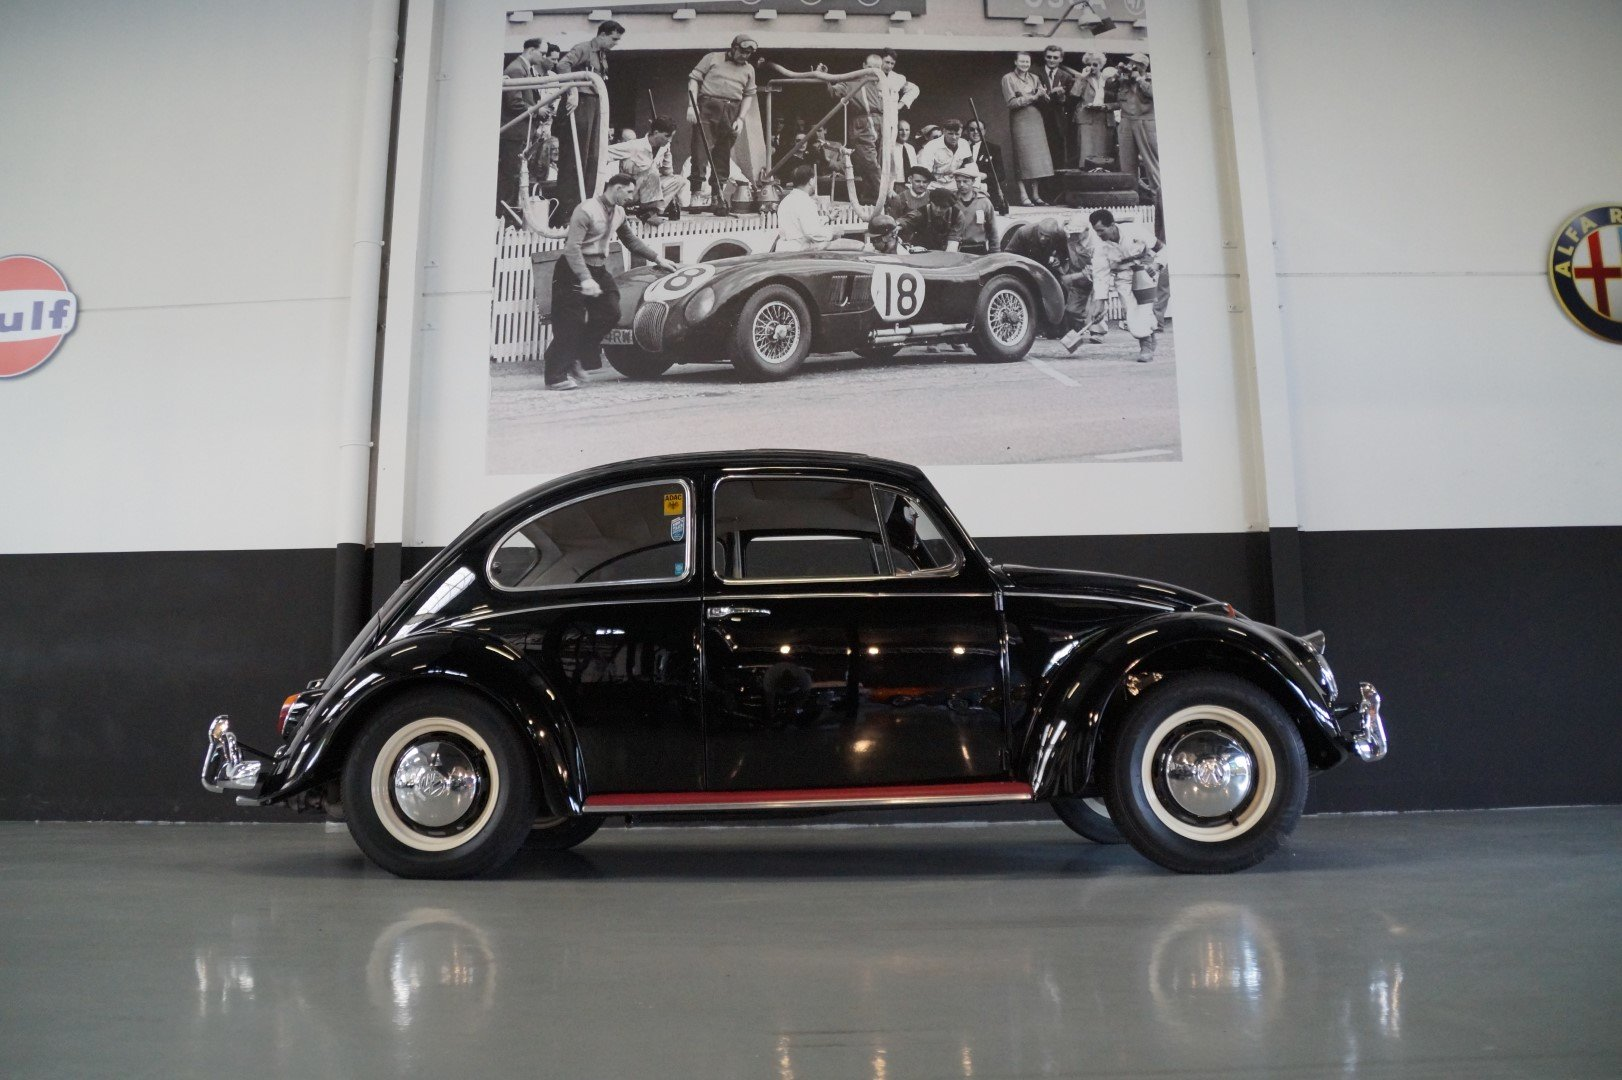 VOLKSWAGEN BEETLE matching numbers fully restored (1967) For Sale (picture 2 of 6)